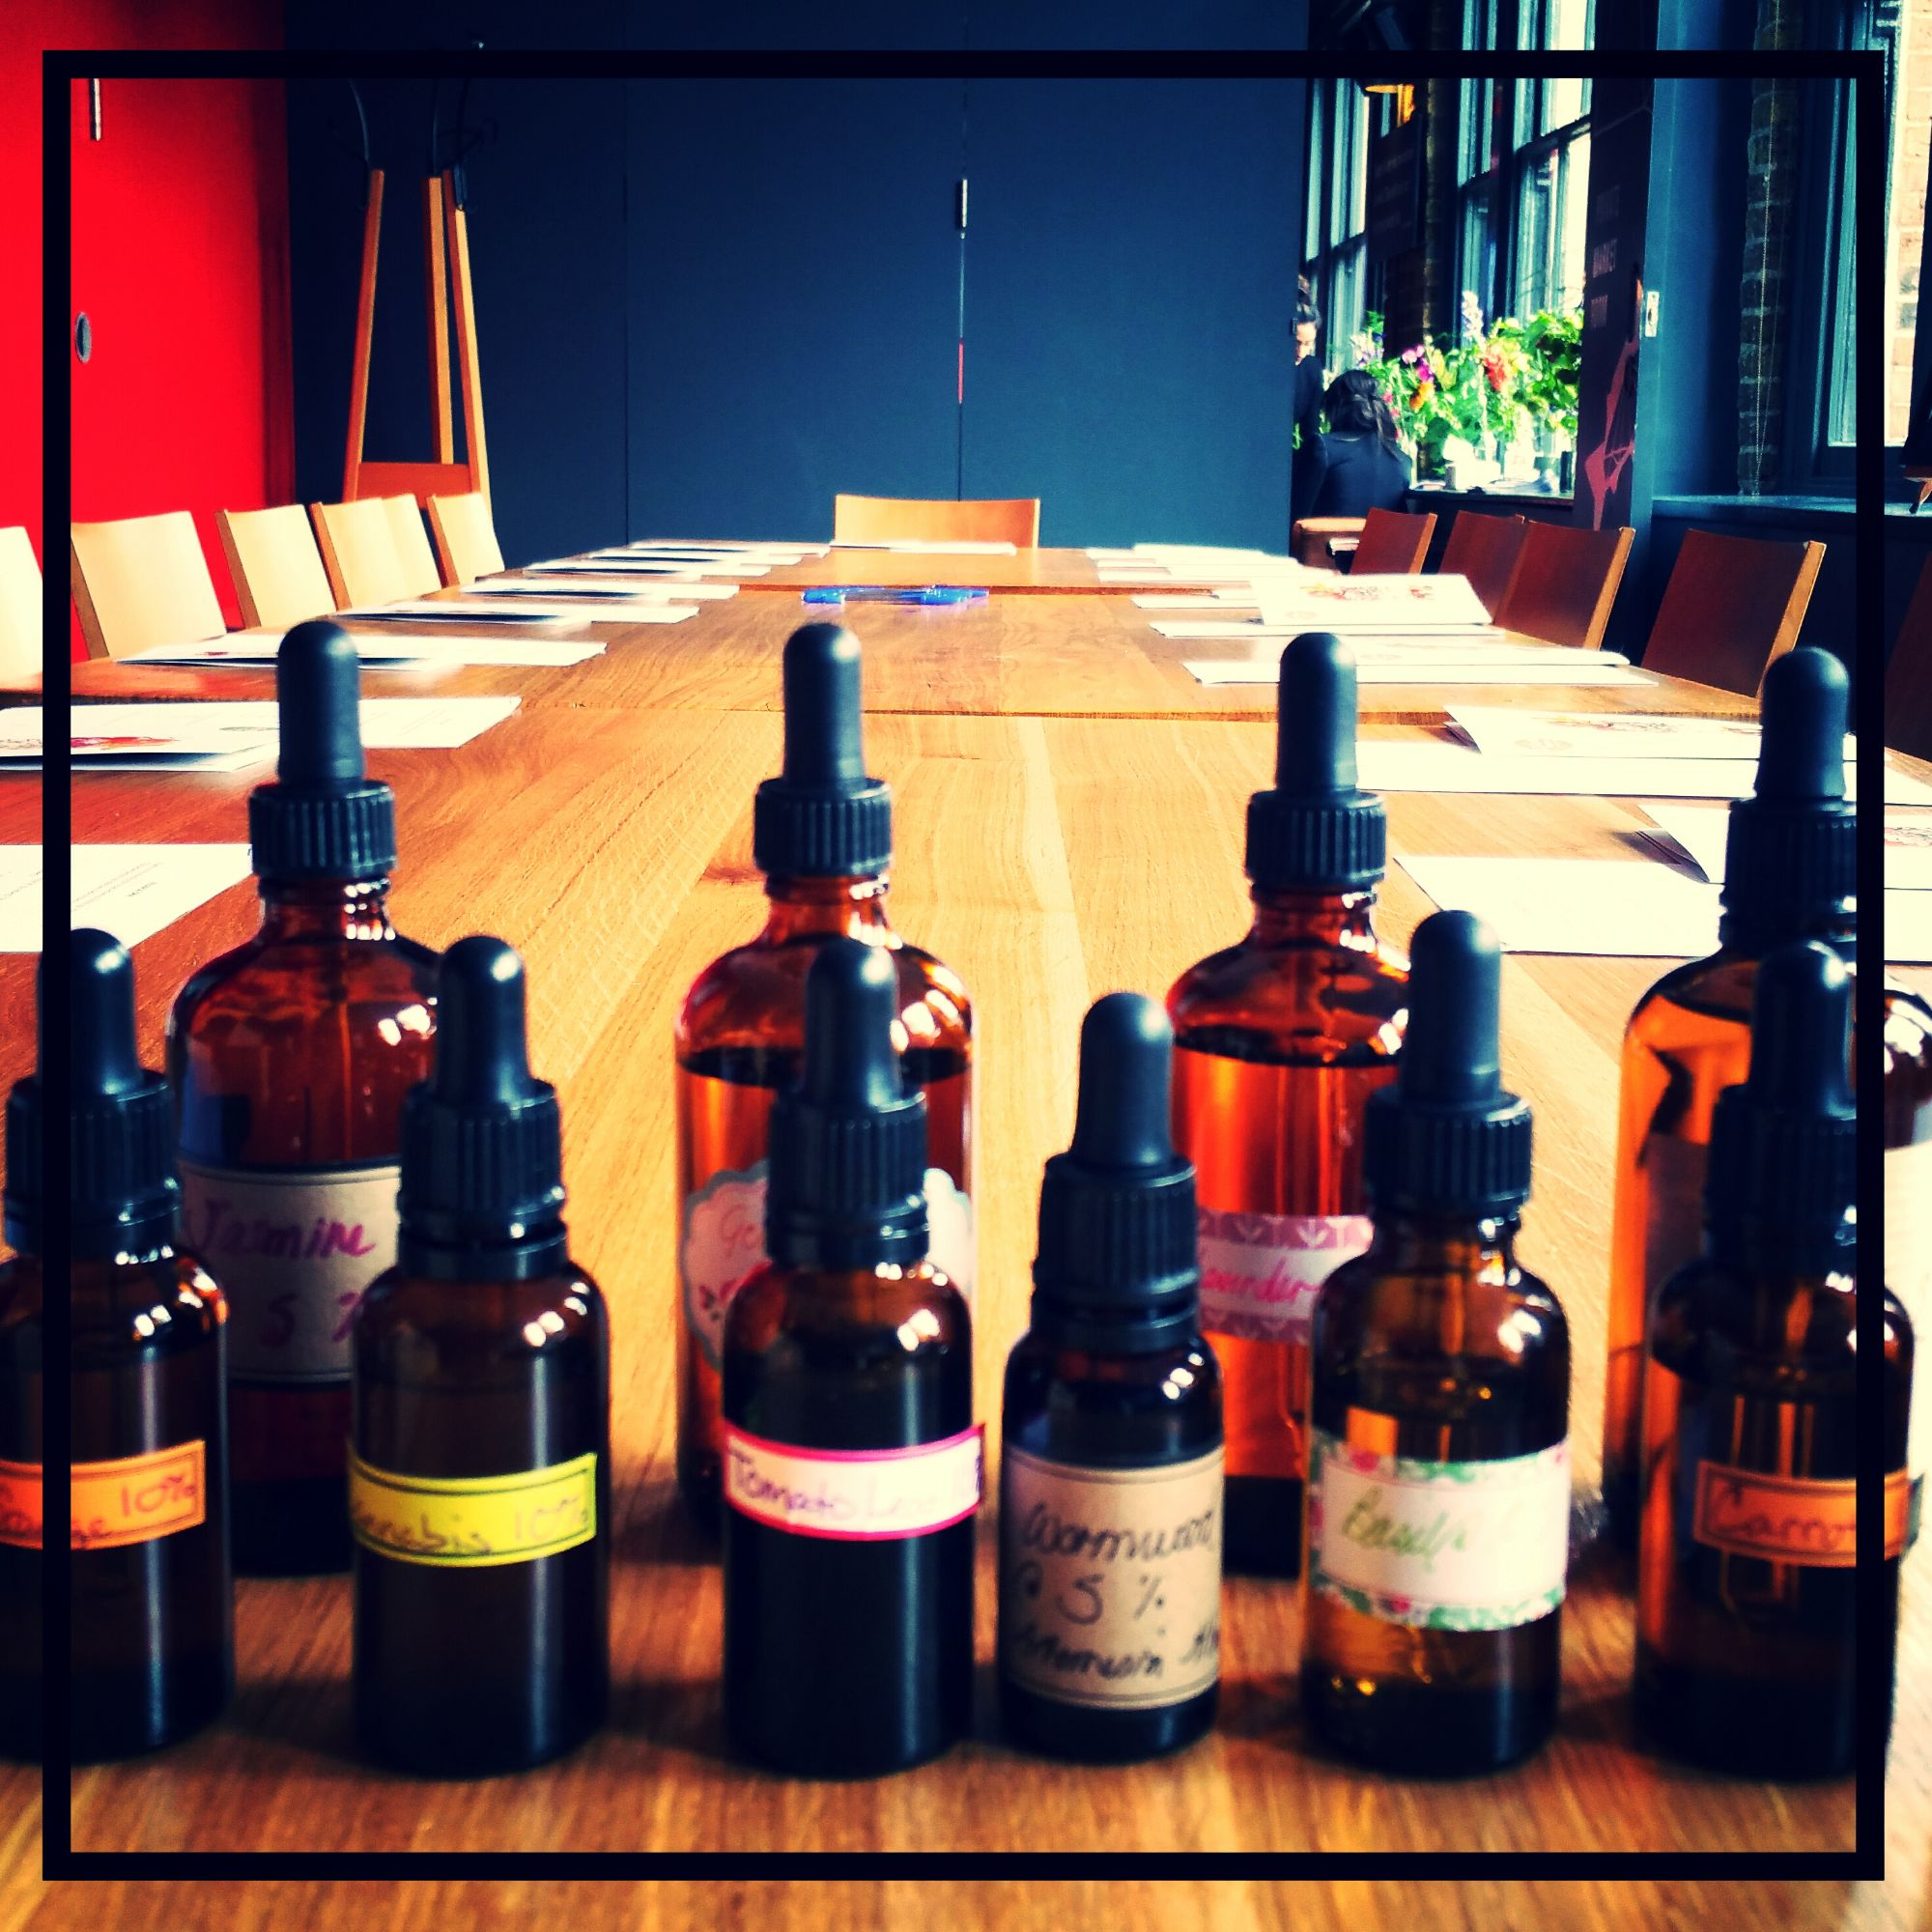 a line up of bottles of ingredients ready for a perfume event